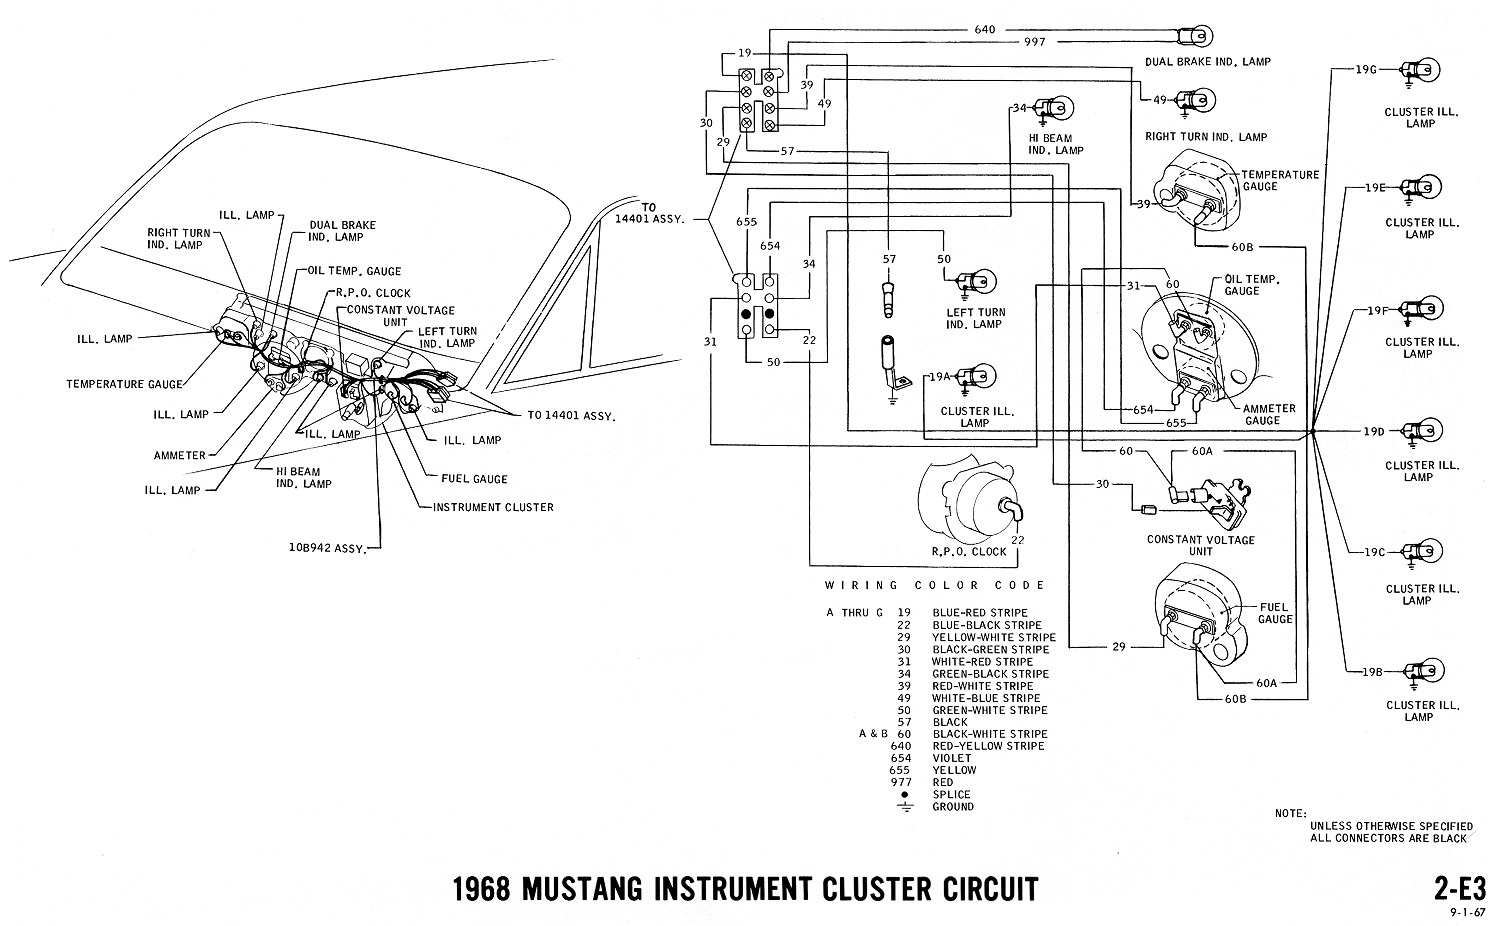 Mustang Wiring Diagram For Solenoid on mustang alternator wiring diagram, mustang solenoid valve, mustang wiring harness diagram, mustang engine wiring diagram,